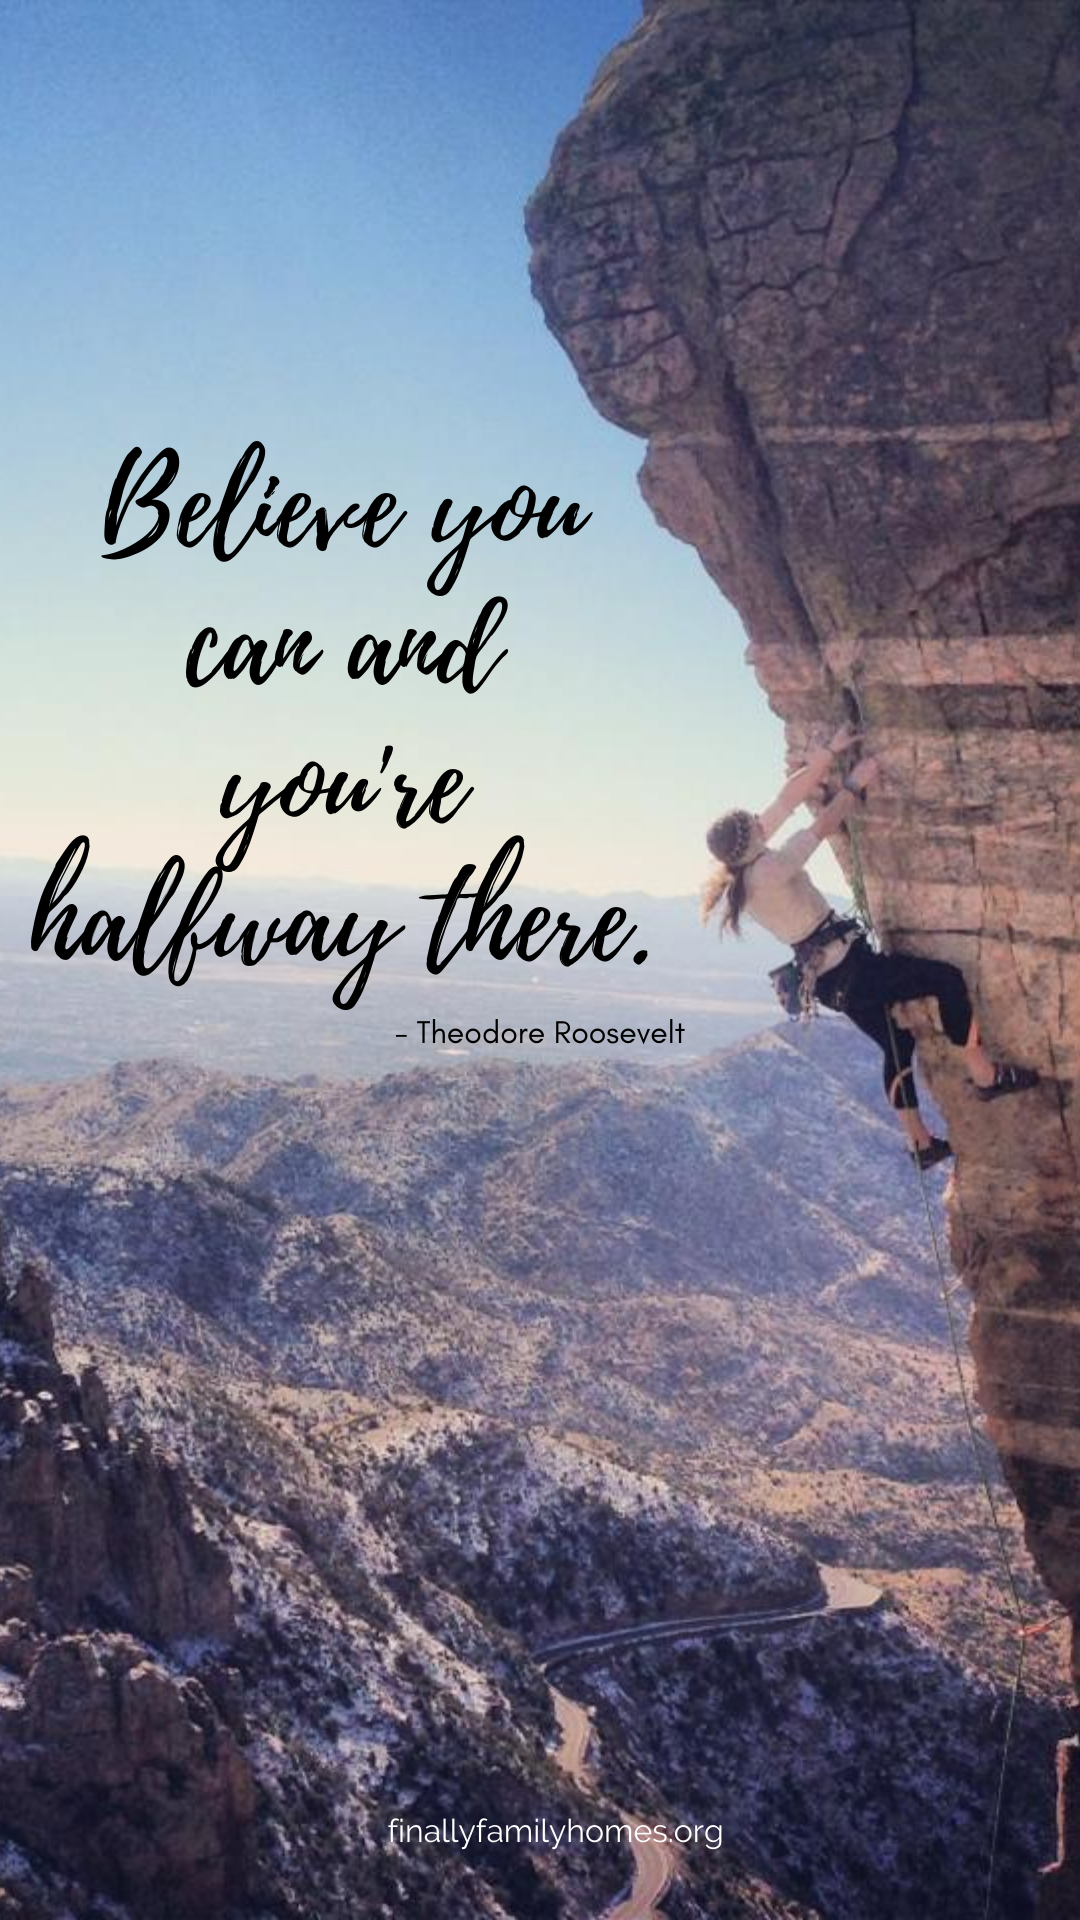 Inspirational Phone Wallpapers Finally Family Homes 1080x1920